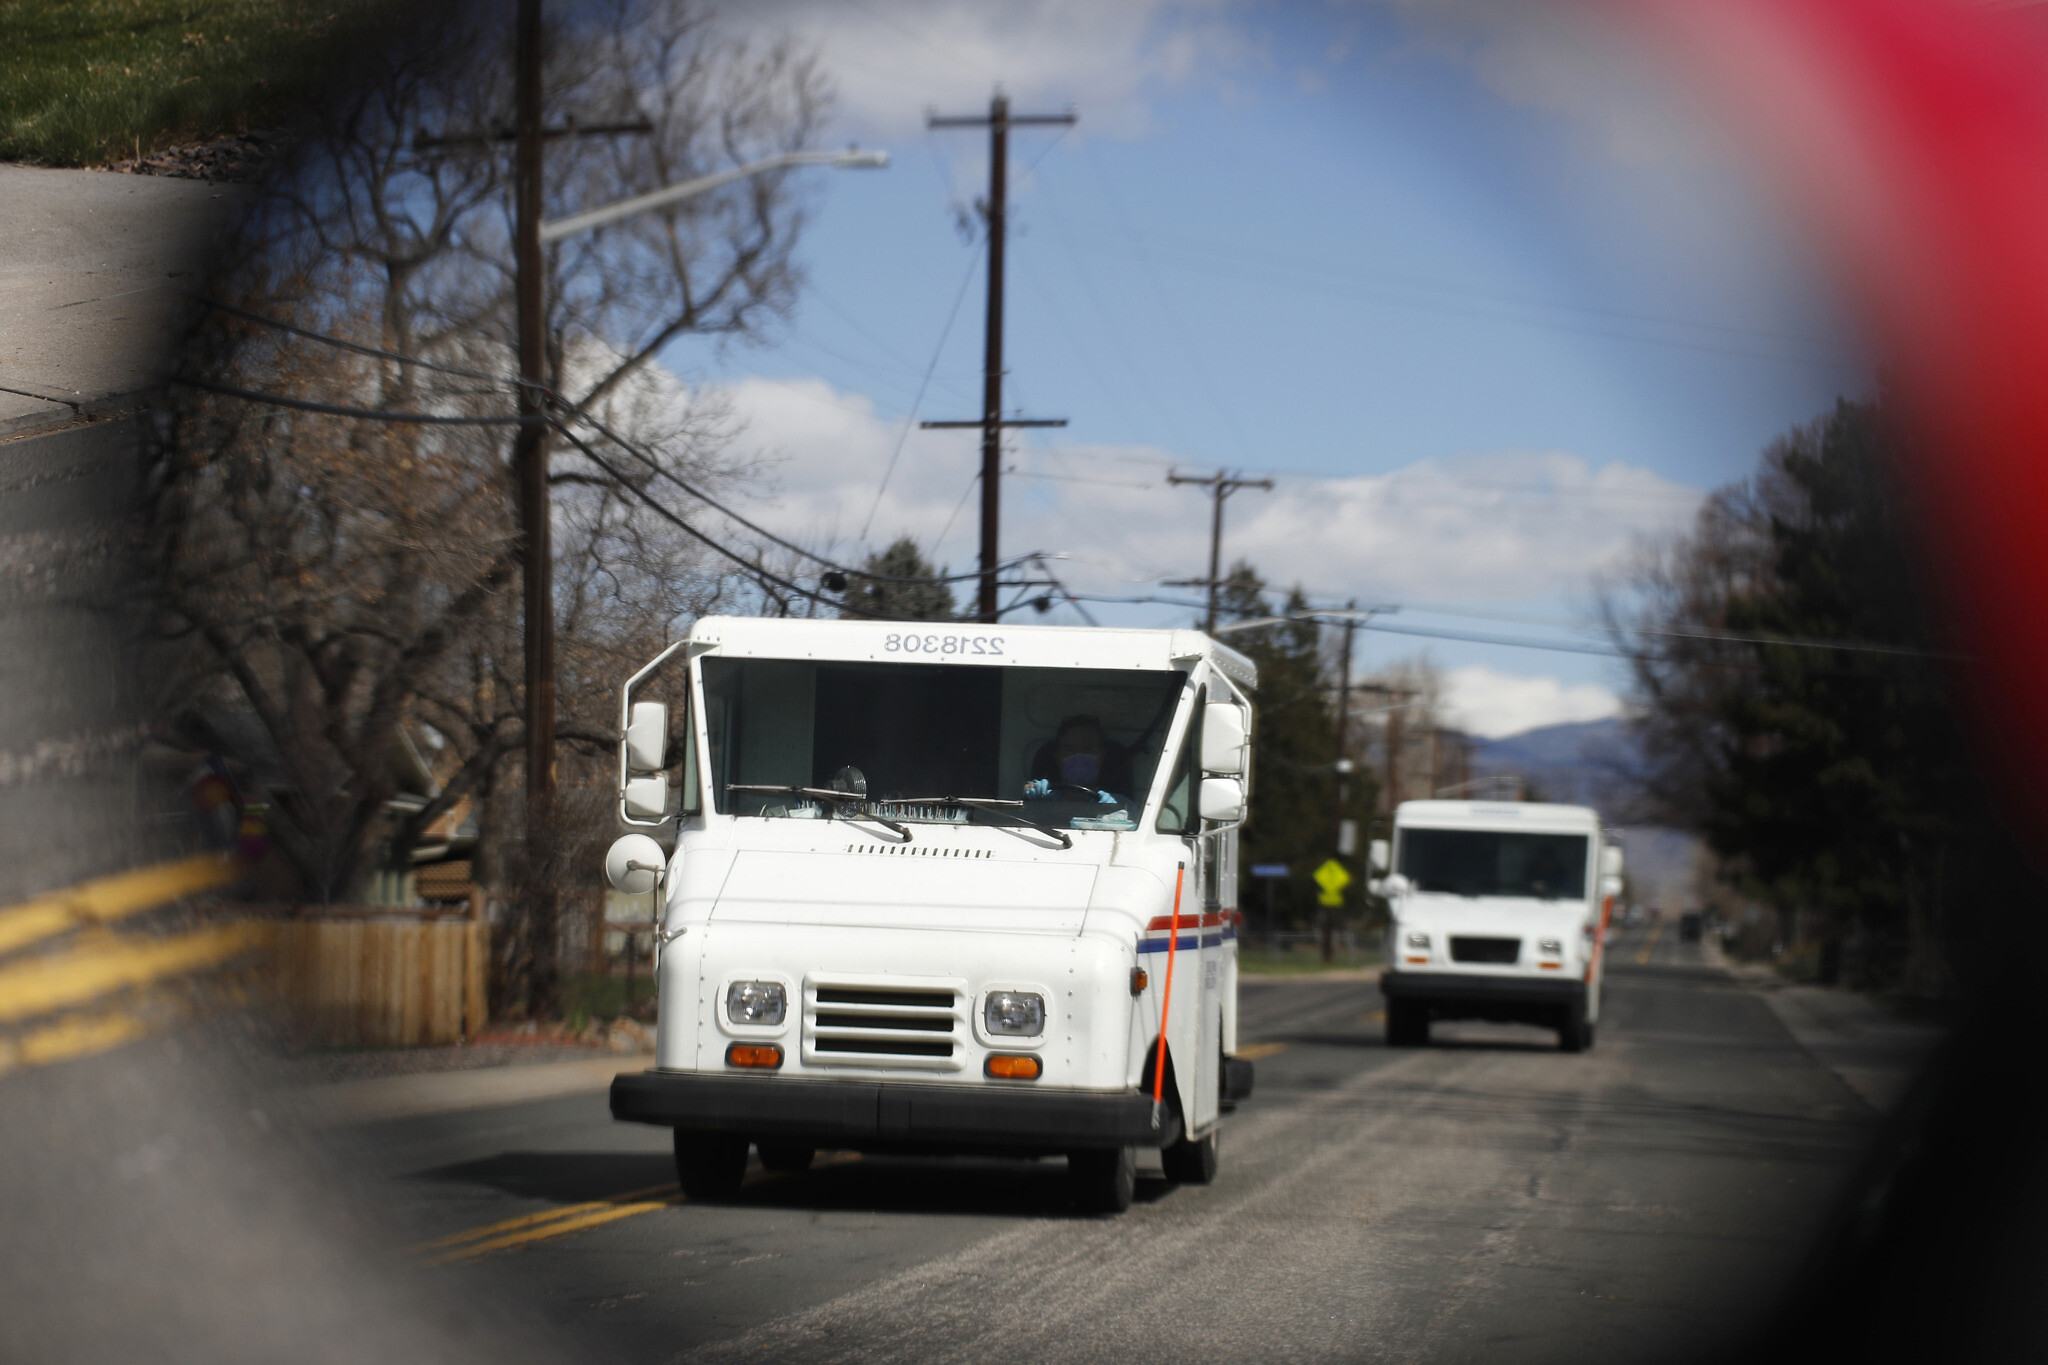 US Democrats step up pressure on postal service cuts ahead of election